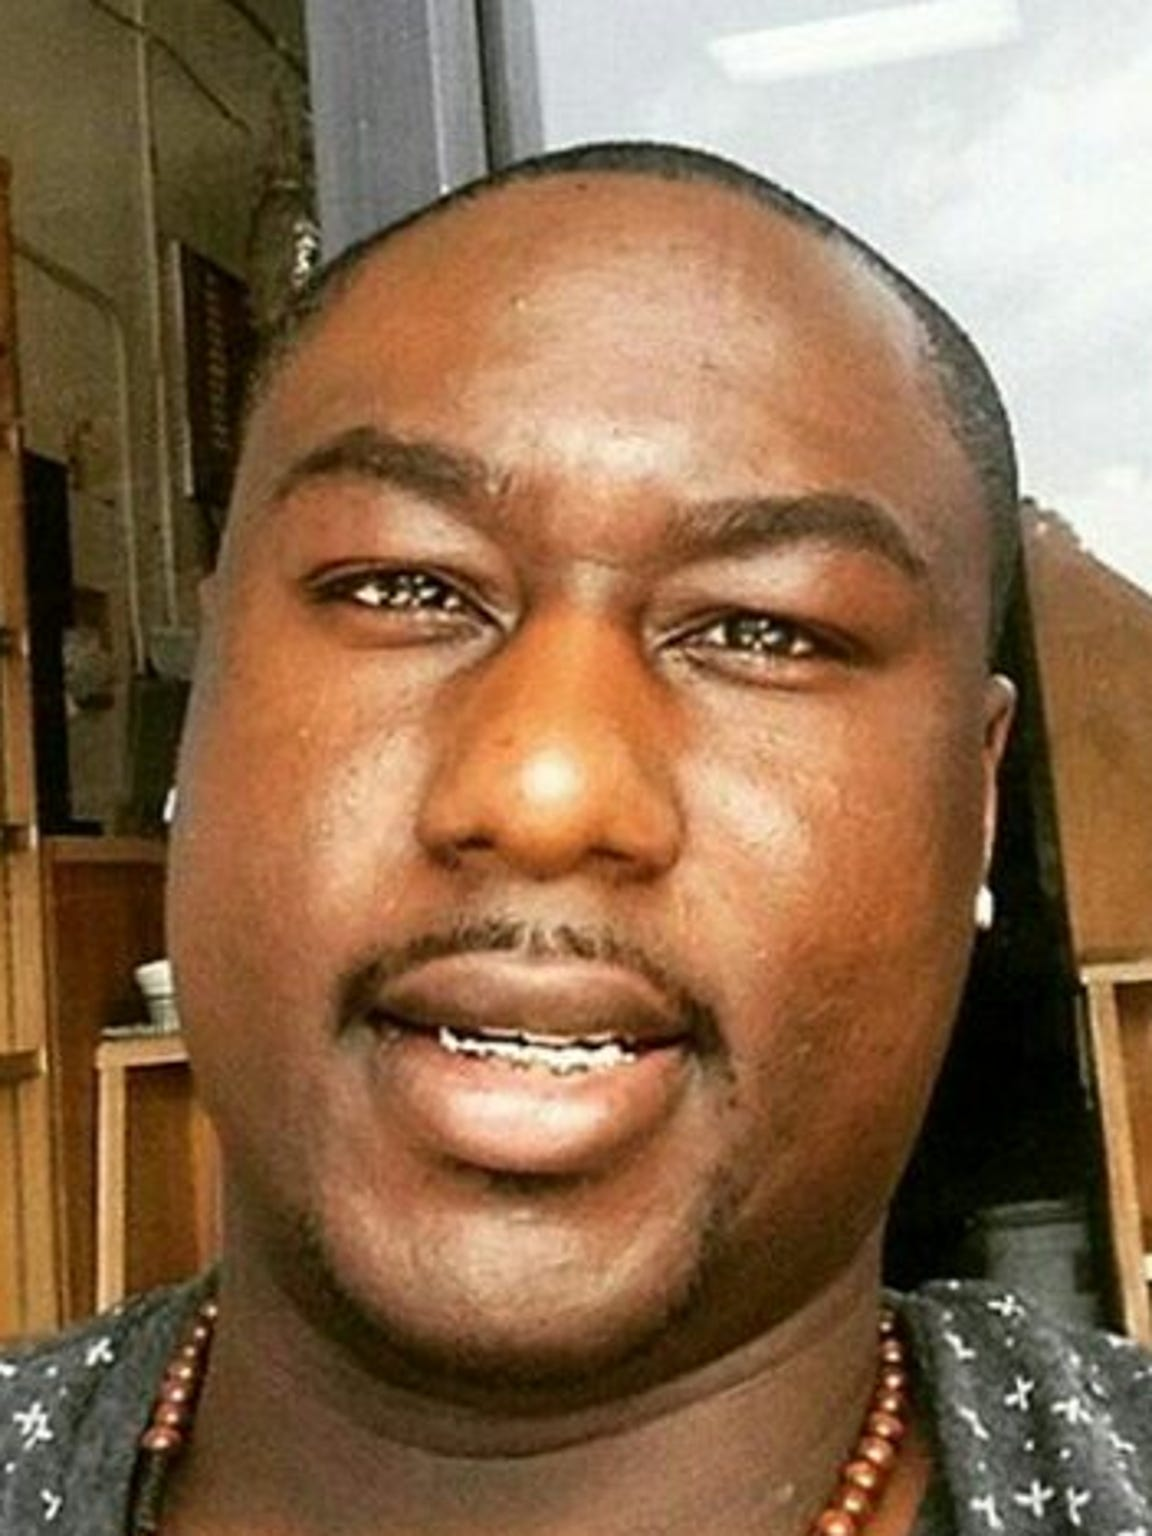 Aaron Austin, 29, of Oxnard was fatally shot on May 16 as he returned to his home on North G Street.